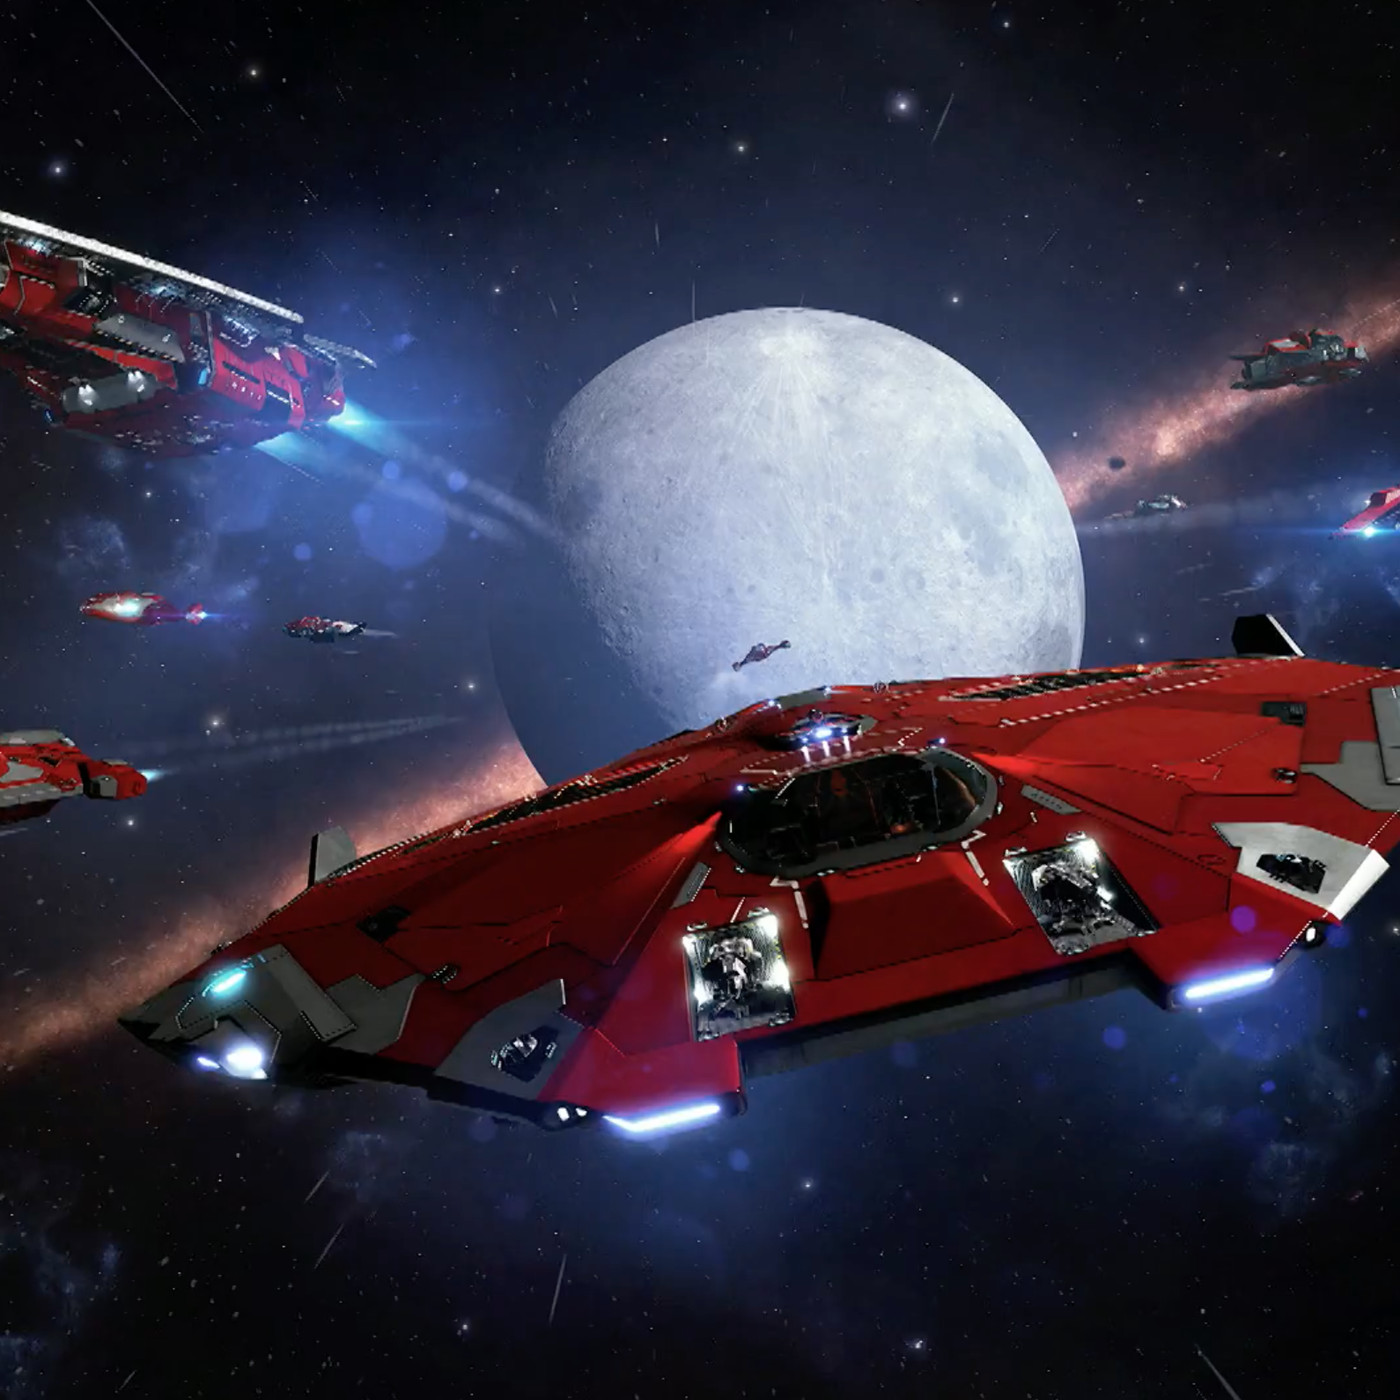 More than 4,600 Elite: Dangerous players will embark on an